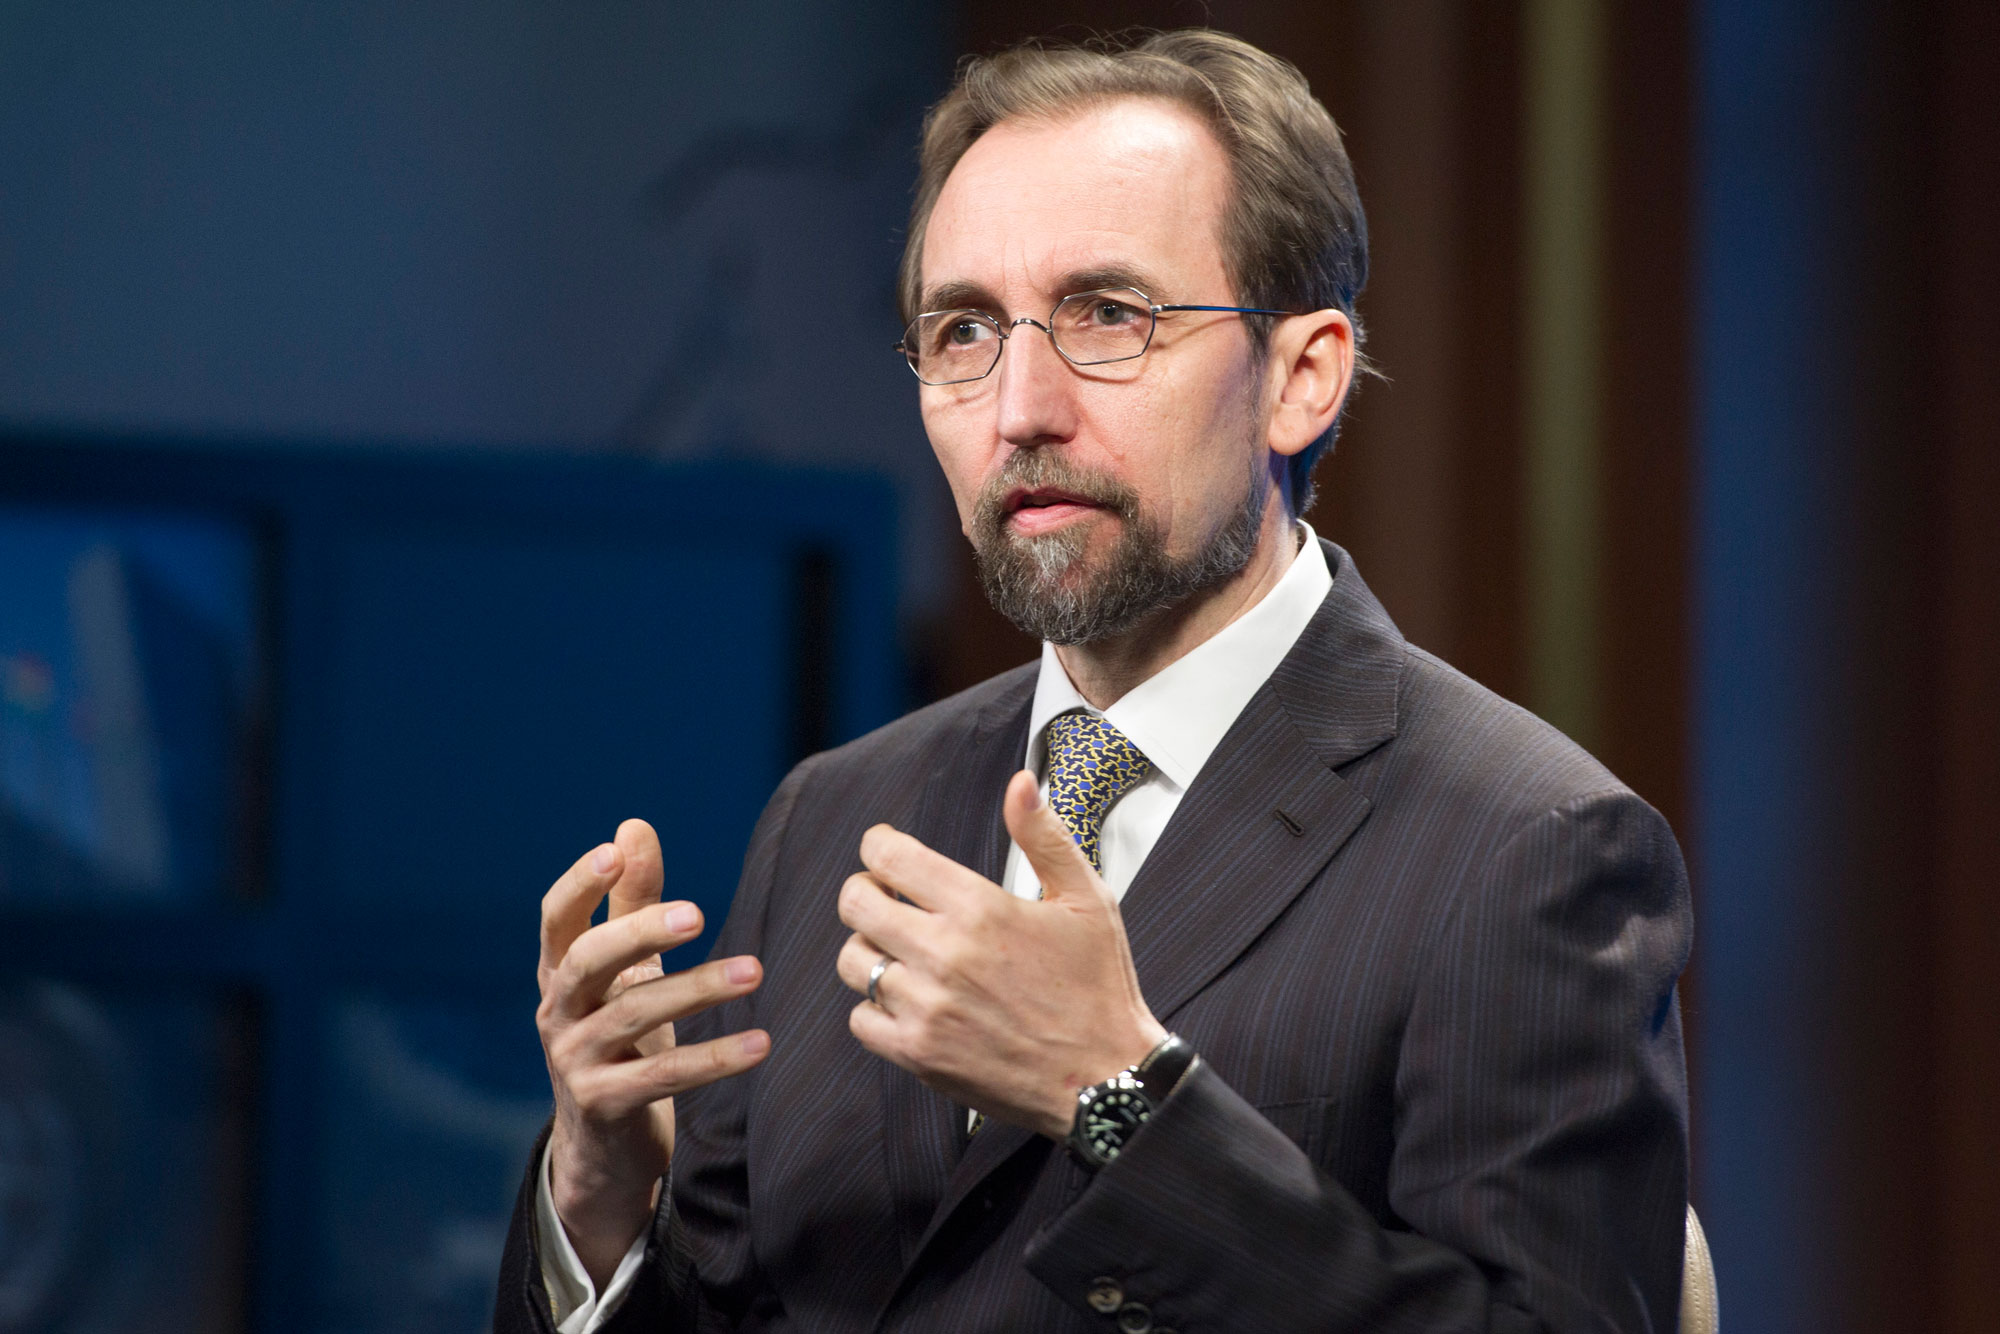 The UN High Commissioner for Human Rights, Zeid Ra'ad Al Hussein. UN Photo/Rick Bajornas